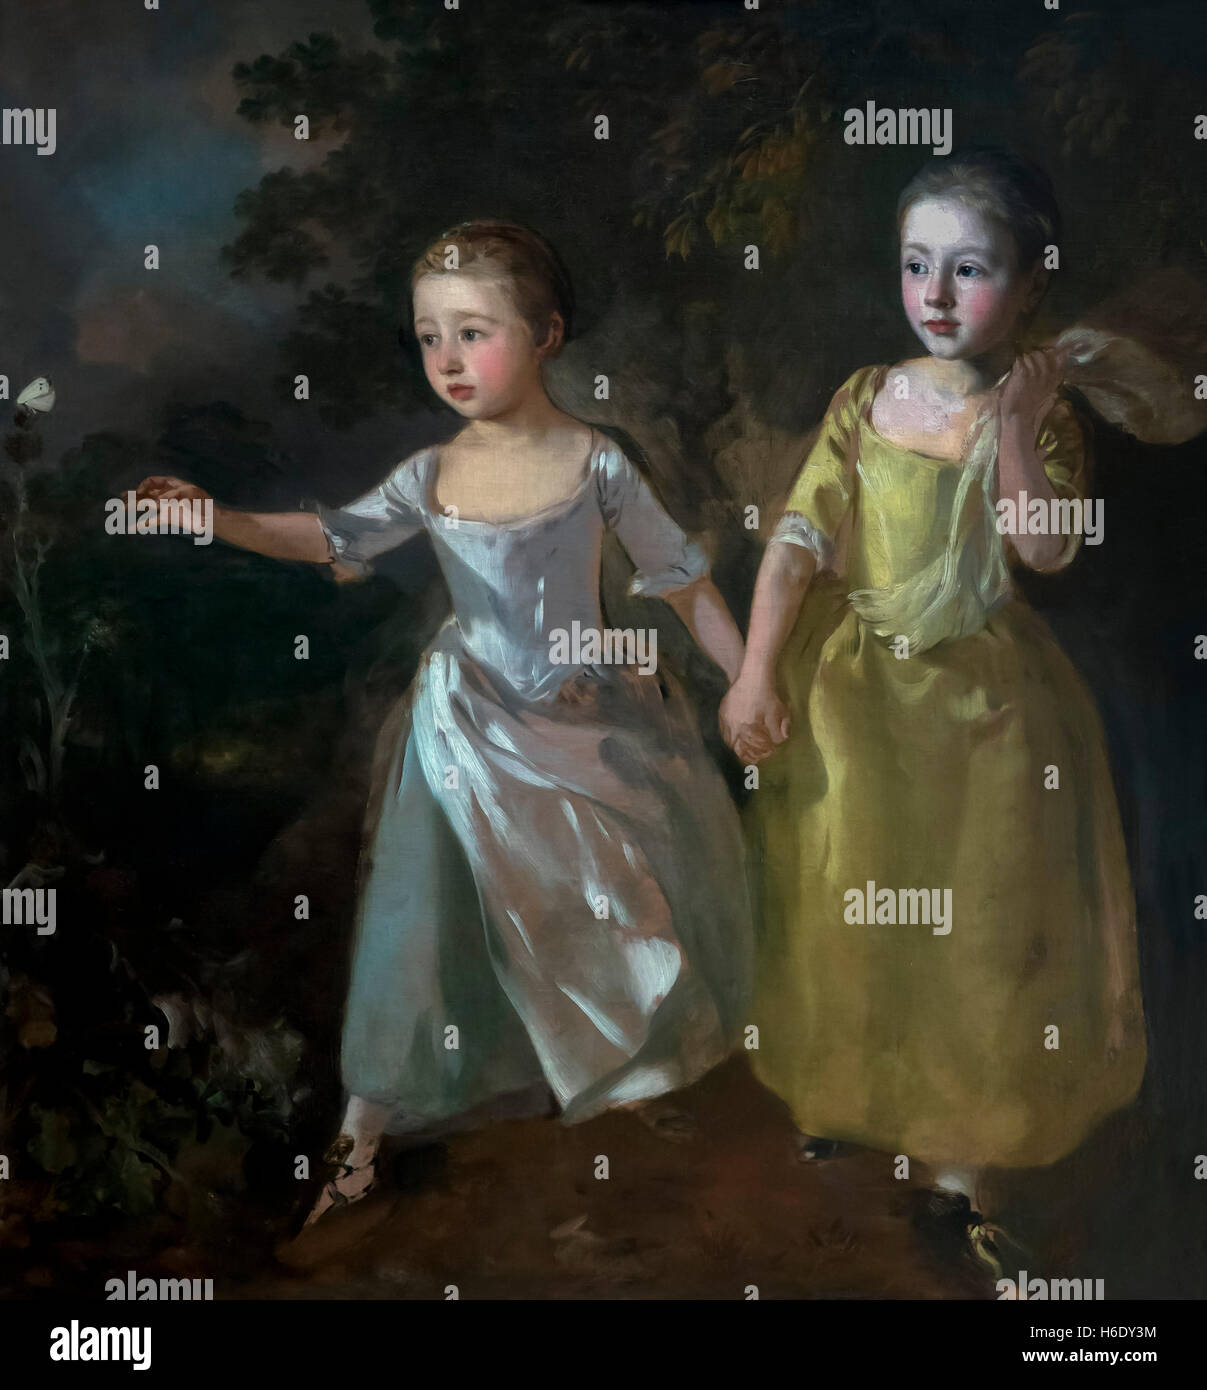 The Painter's Daughters chasing a Butterfly by Thomas Gainsborough, circa 1756,  England, UK, GB Europe - Stock Image